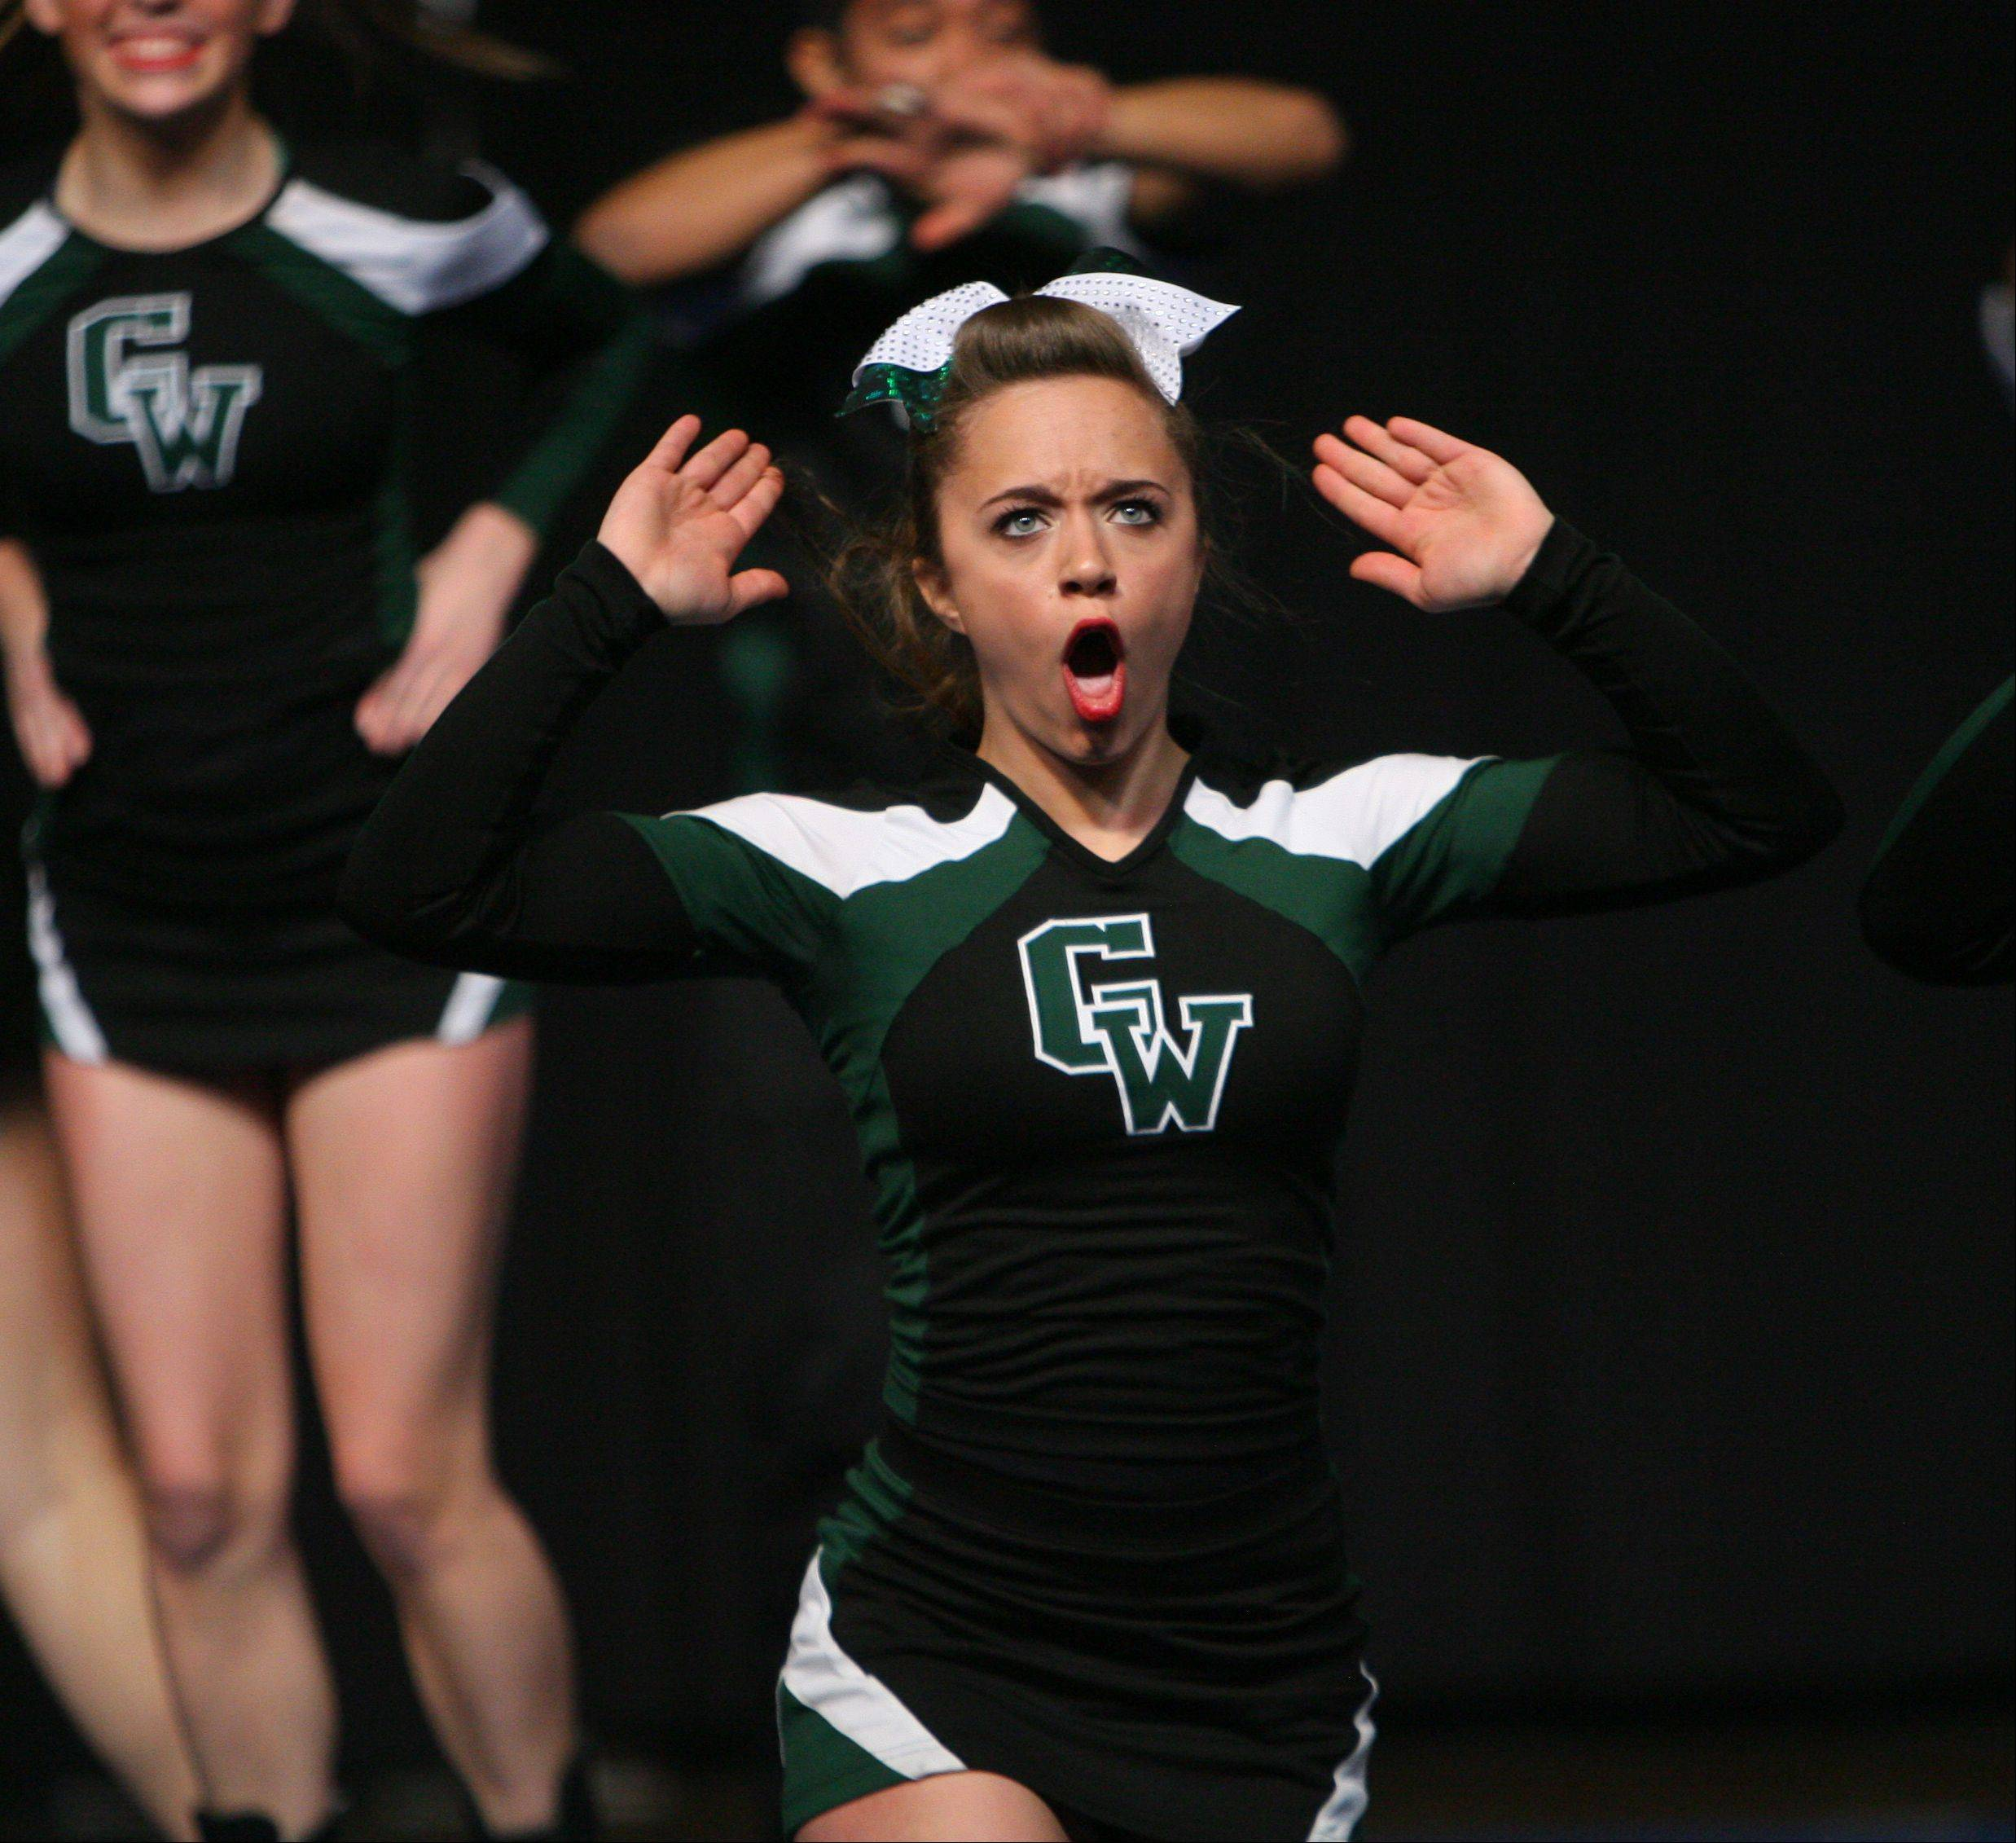 Glenbard West High School waits for the results in the IHSA Competitive Cheerleading finals on Saturday, Feb. 2 at the U.S. Cellular Coliseum in Bloomington.